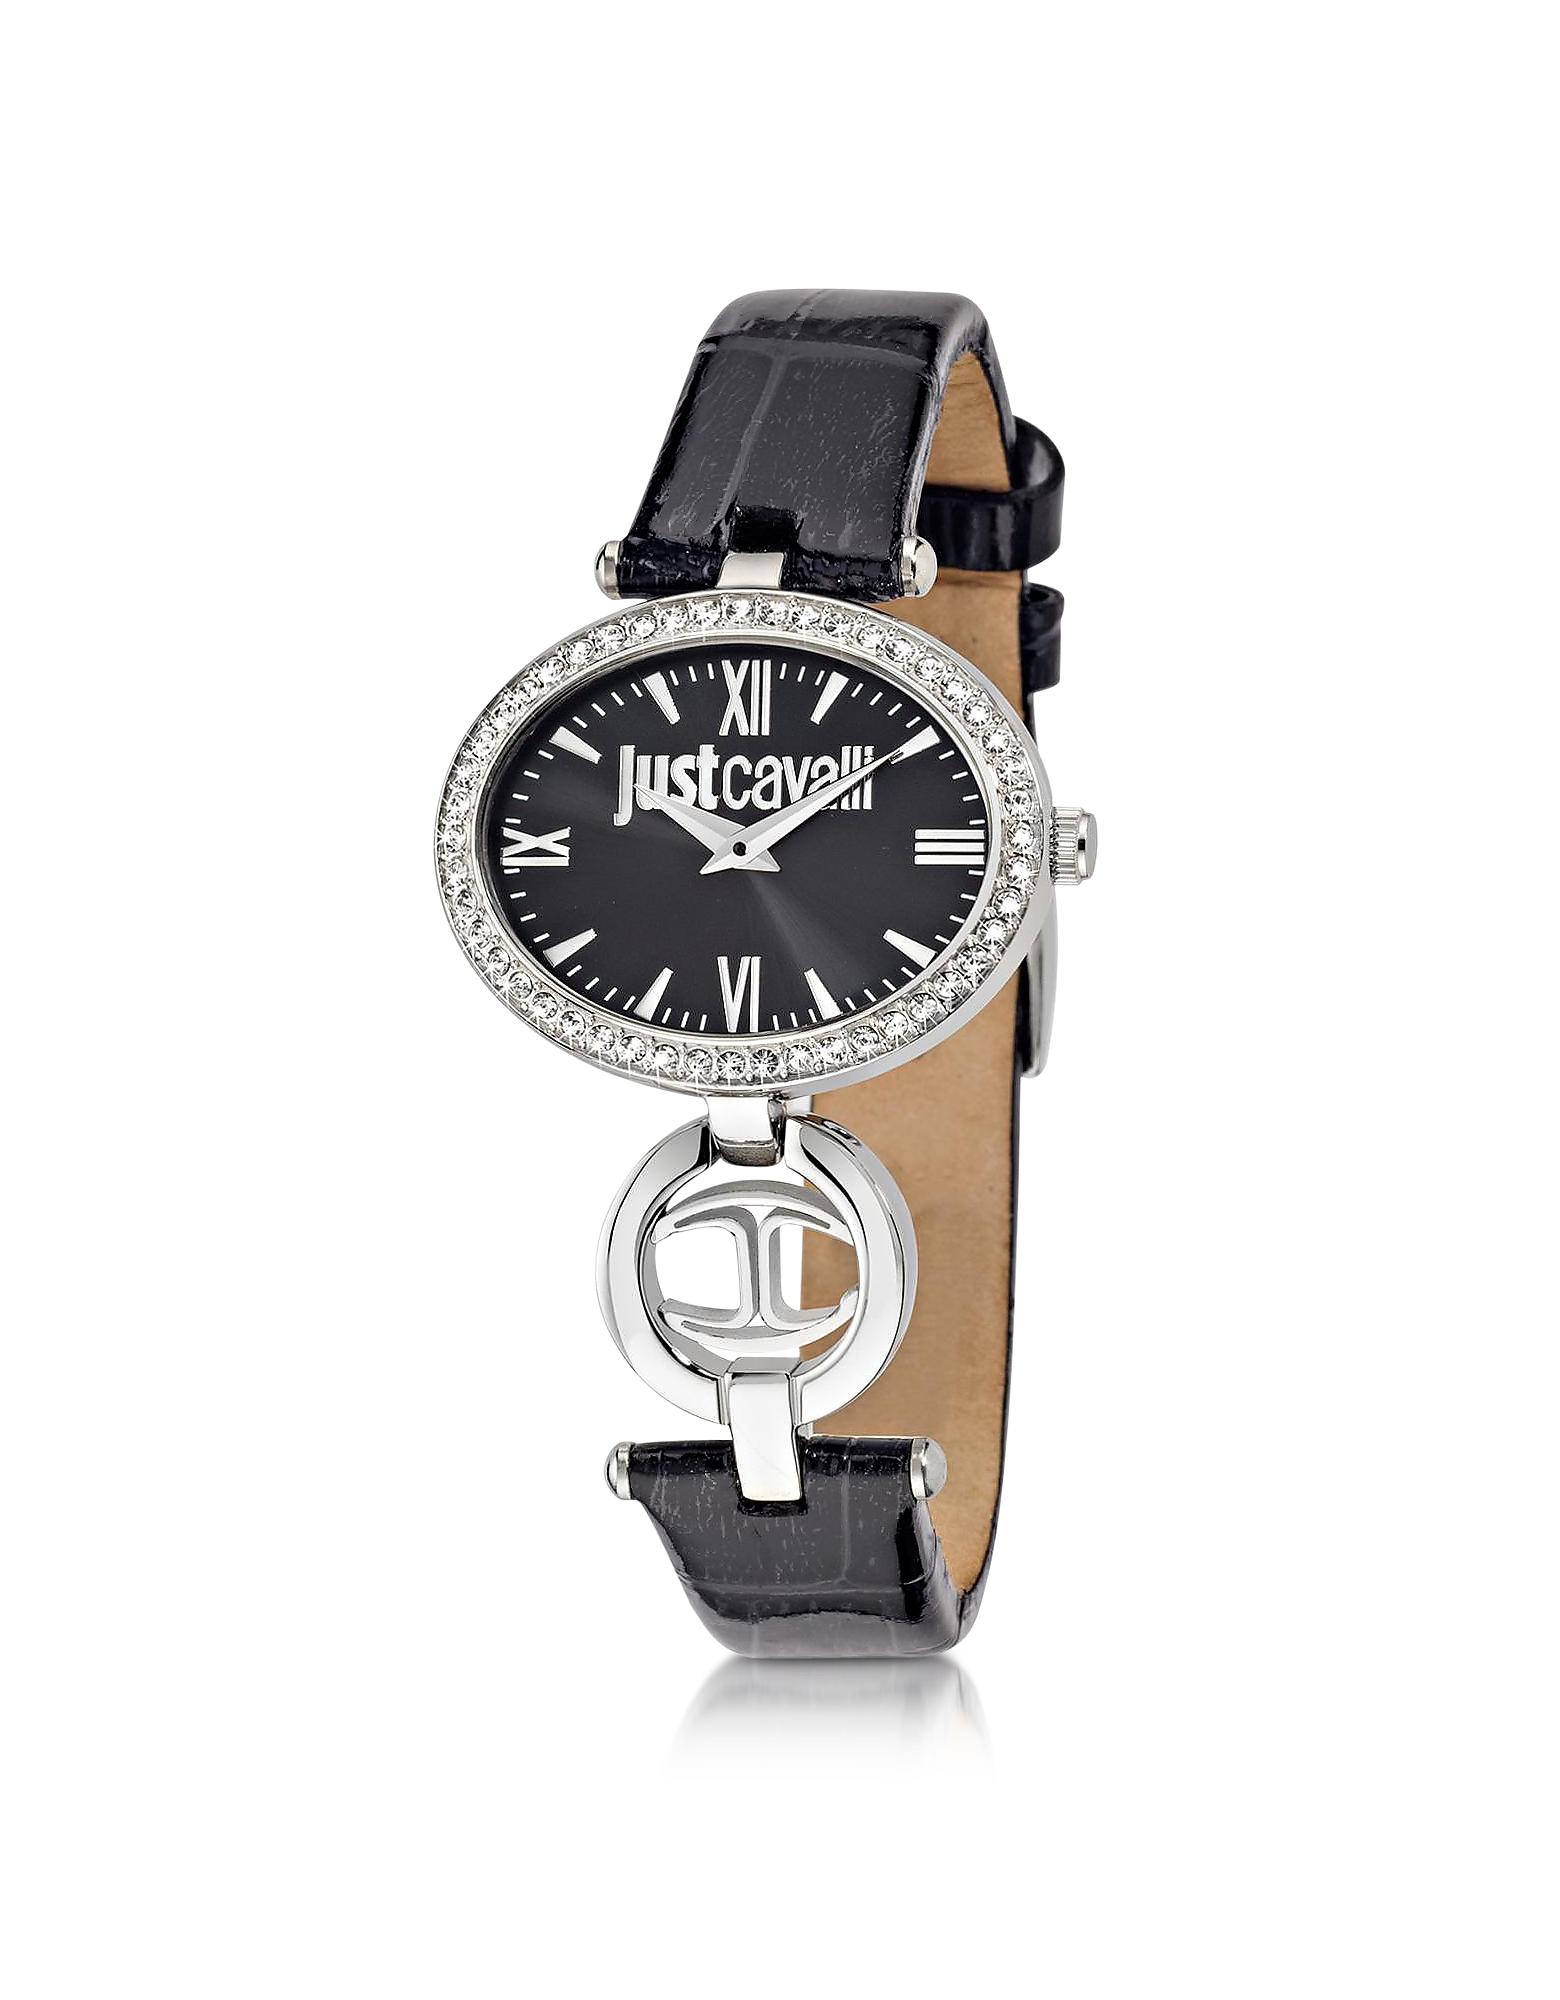 Just Cavalli Women's Watches, Just Icon Silver Stainless Steel w/Black Croco Embossed Patent Leather